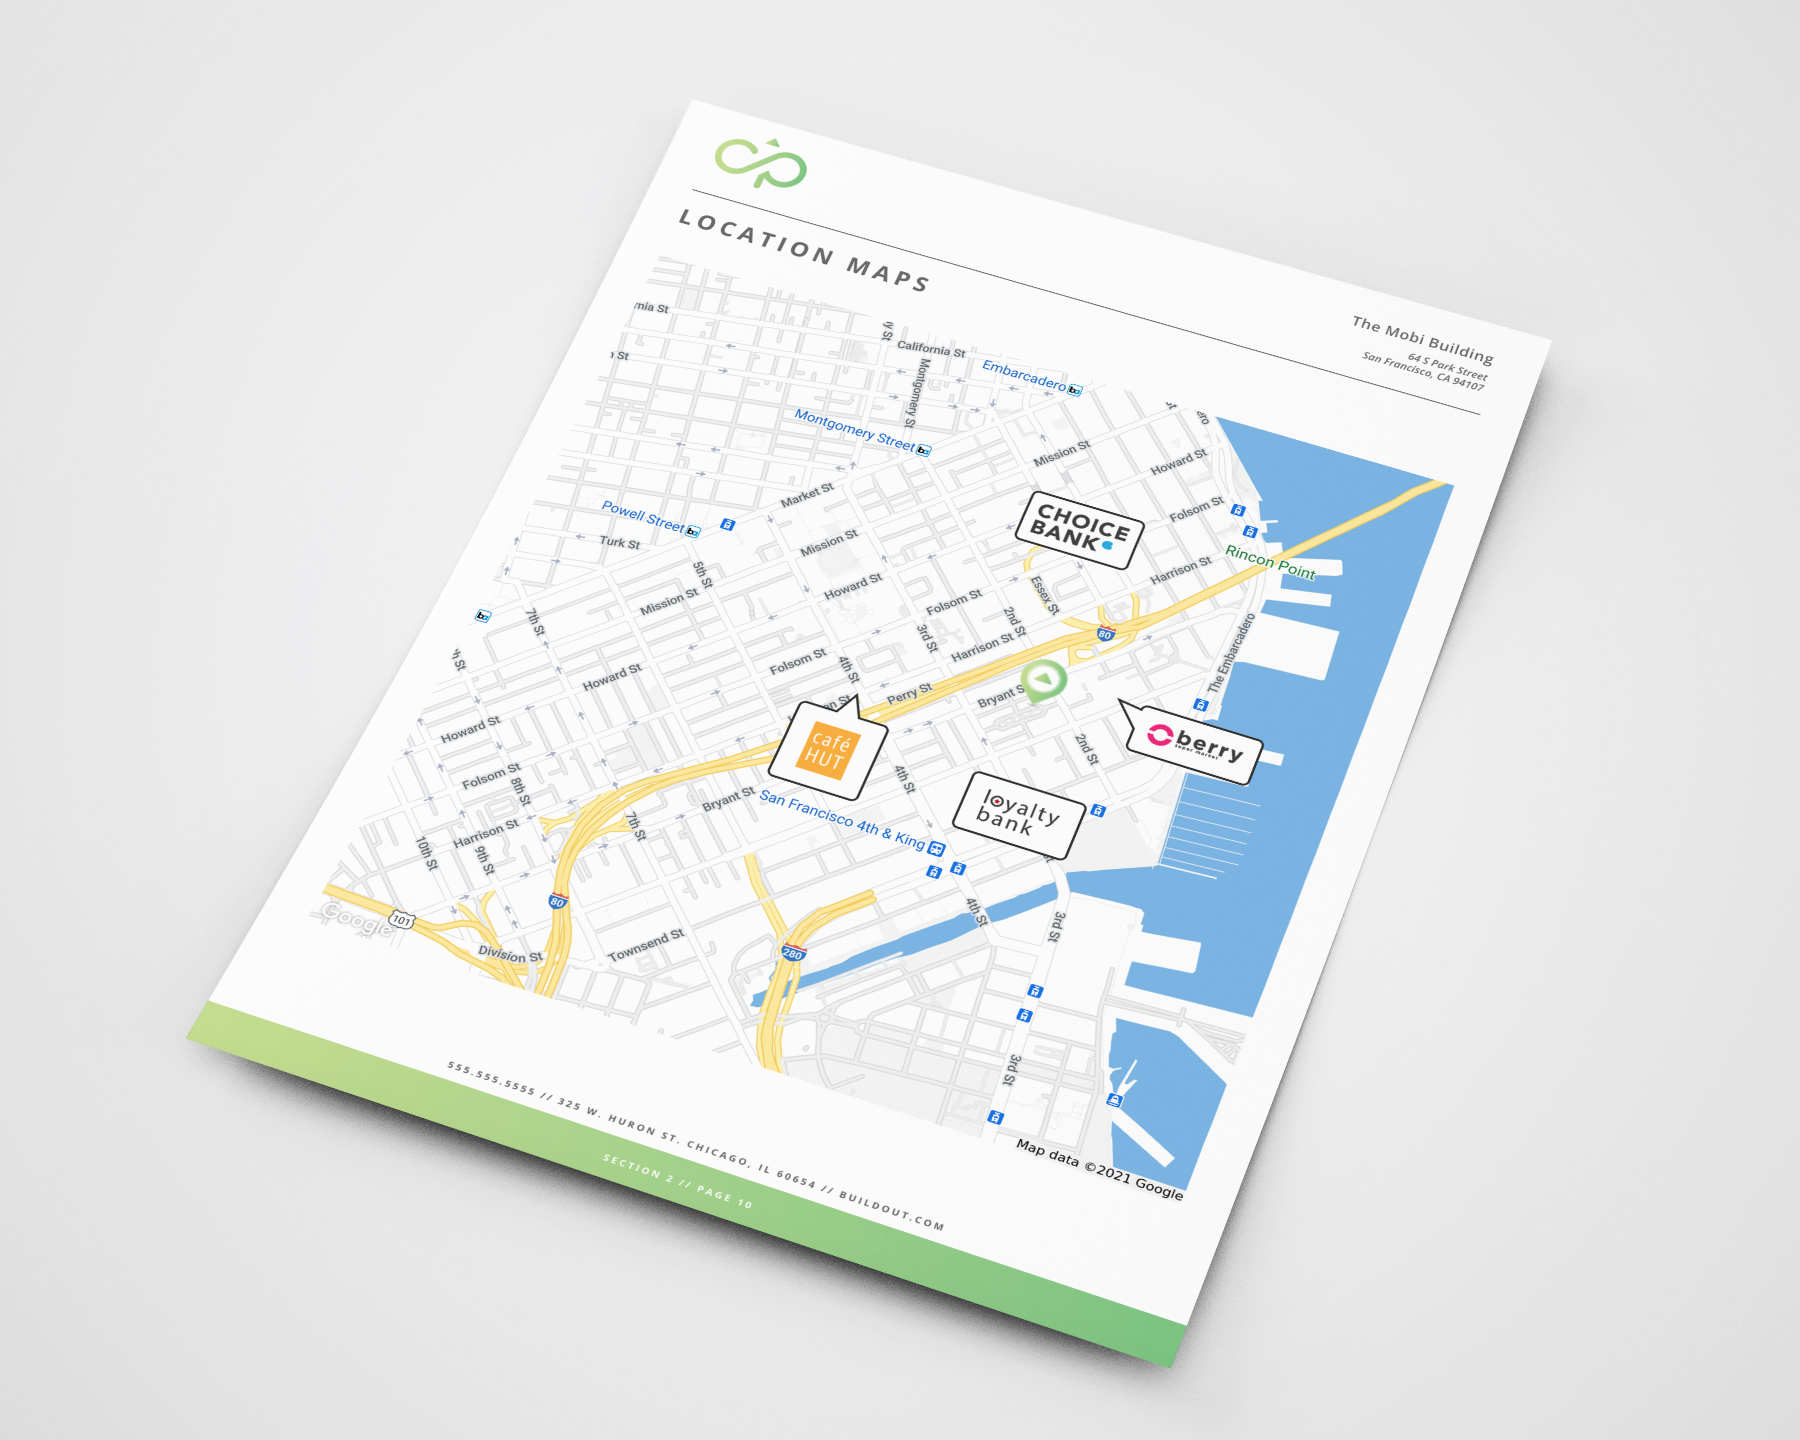 An example Retailer Map page from a proposal created in Buildout